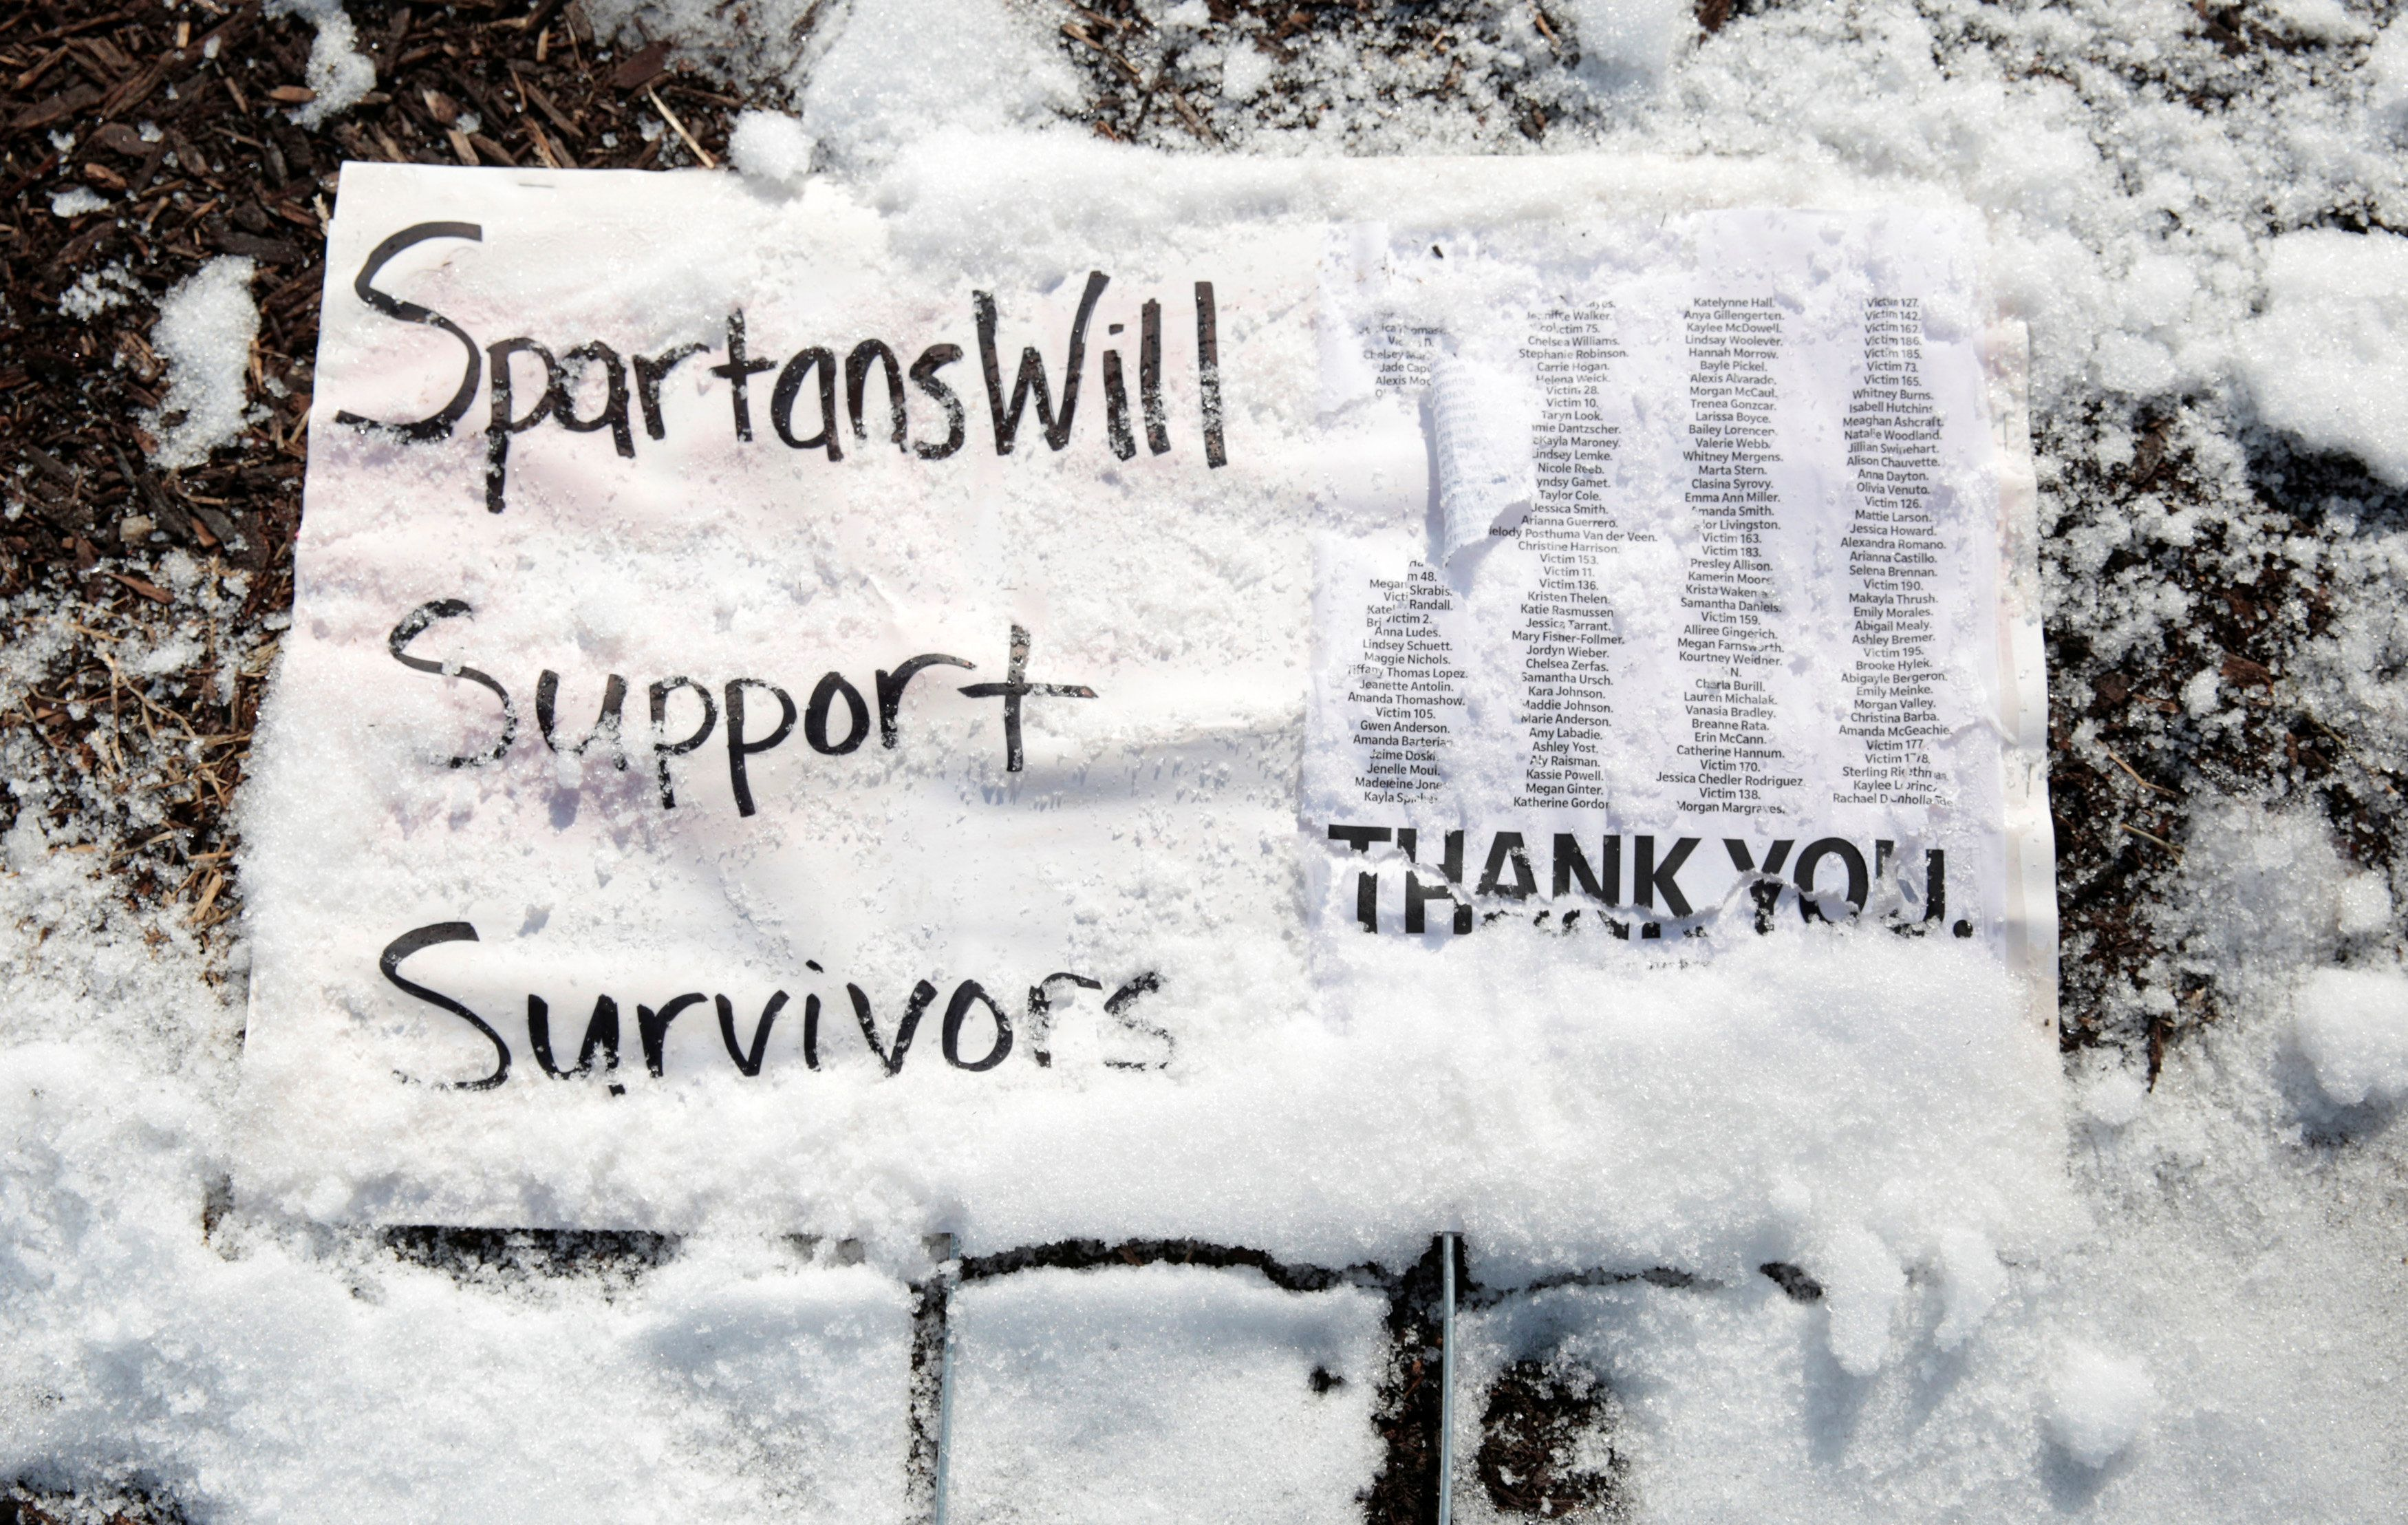 A sign is seen in the snow on the campus of Michigan State University showing support for the assault victims of Larry Nassar, a former team USA Gymnastics doctor who pleaded guilty in November 2017 to sexual assault, in East Lansing, Michigan, U.S., February 1, 2018.   REUTERS/Rebecca Cook